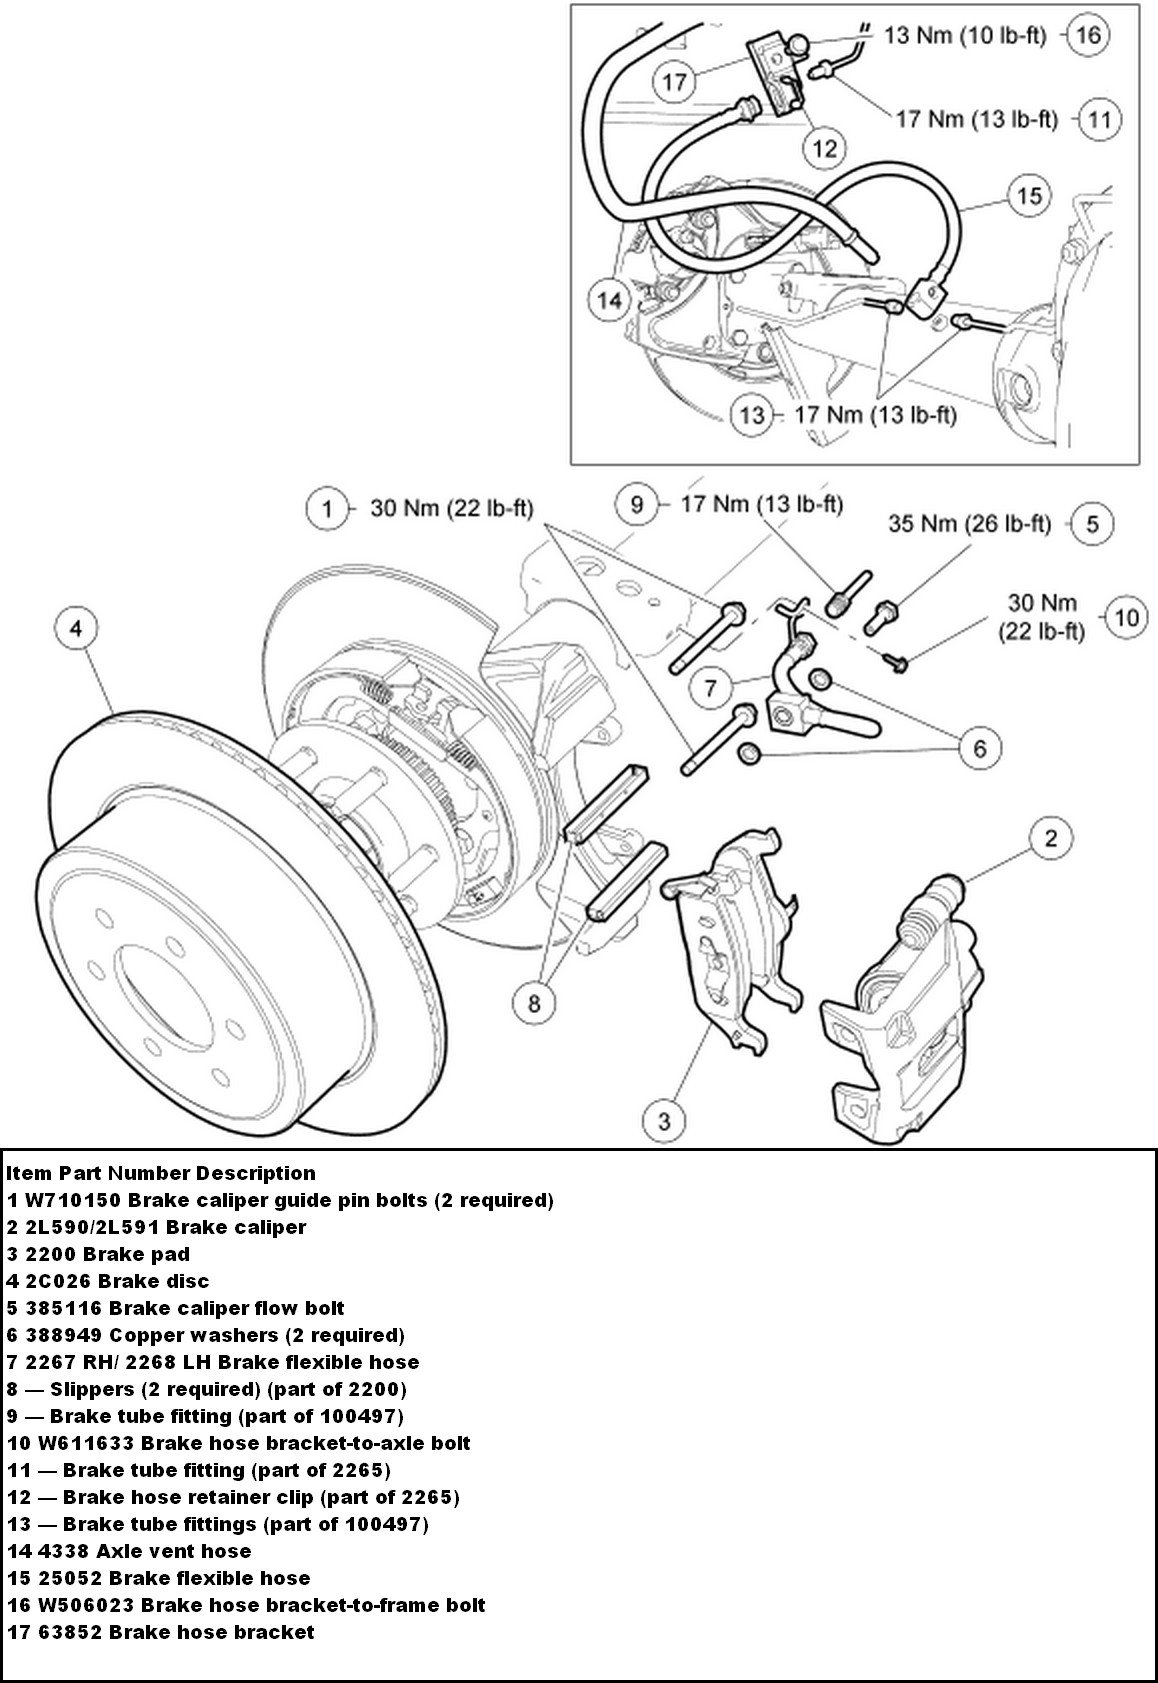 06 toyota tundra airbag sensor location  06  free engine